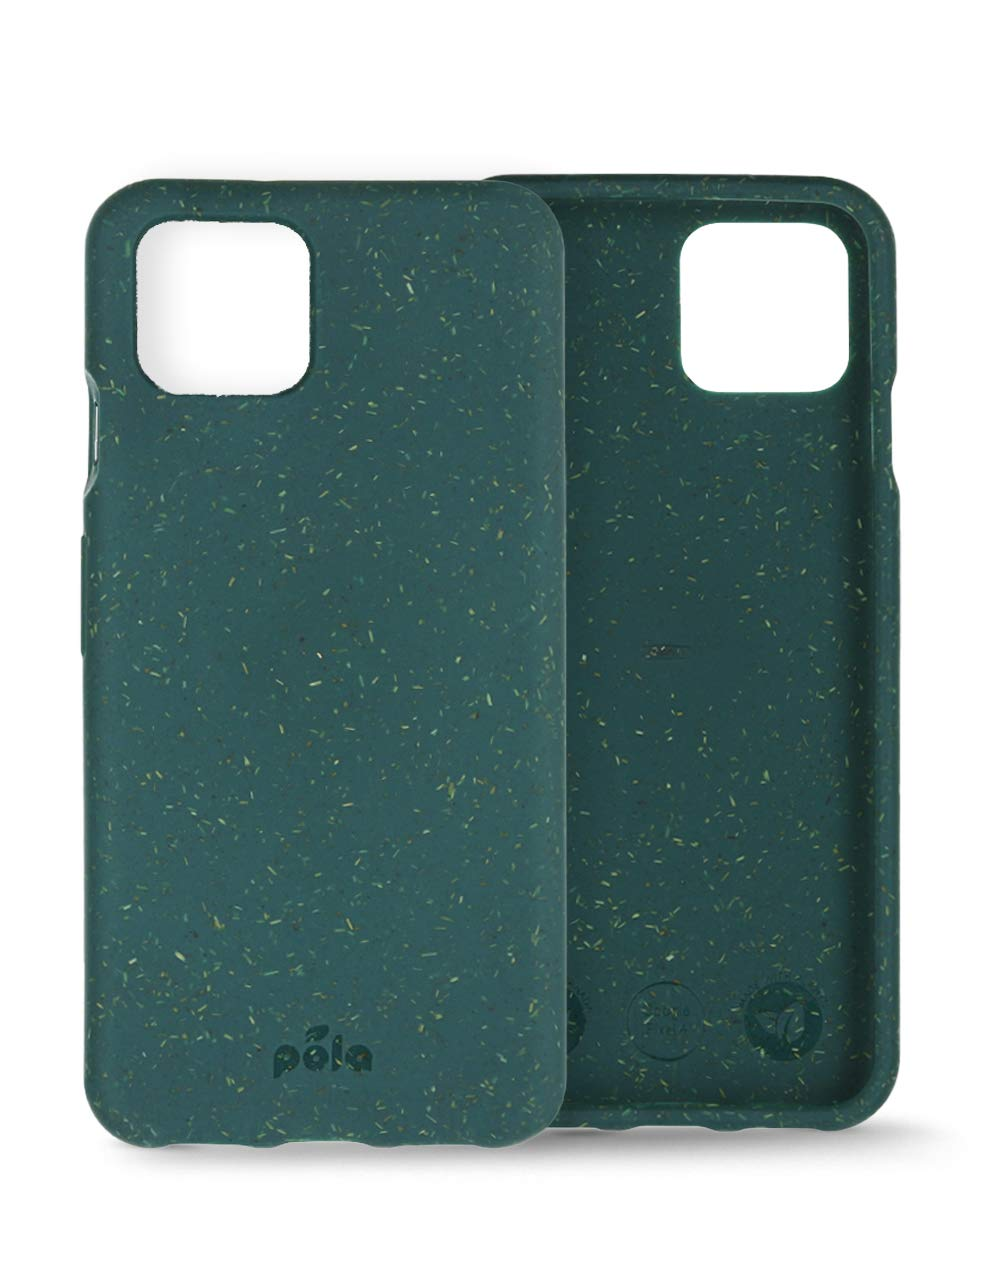 Pela: Phone Case for Google Pixel 4-100% Compostable - Eco-Friendly